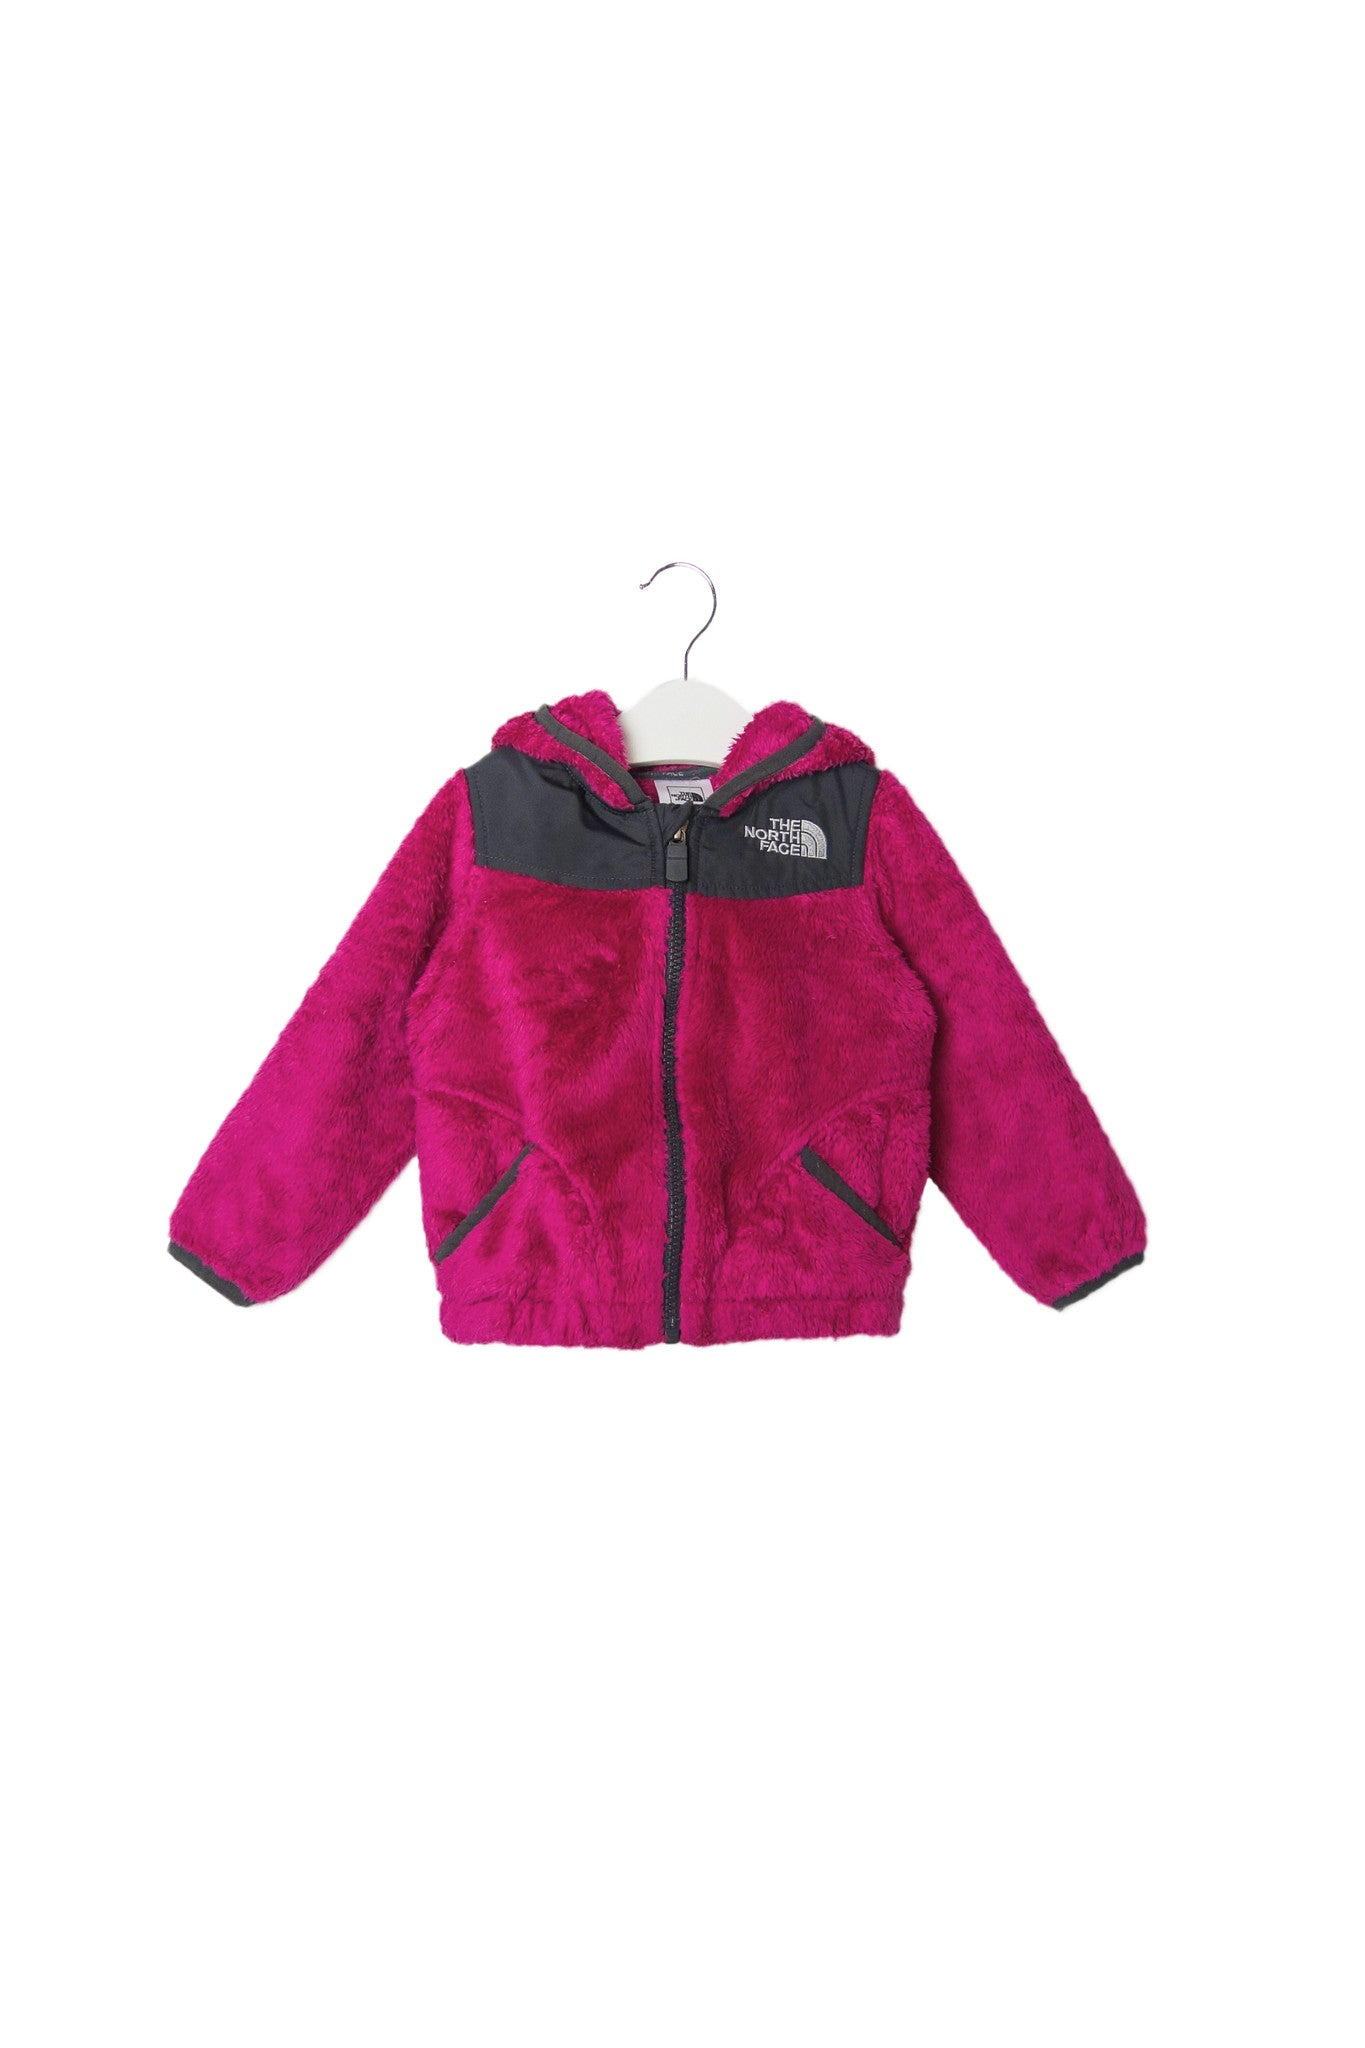 10003388 The North Face Baby~Jacket 12-18M at Retykle